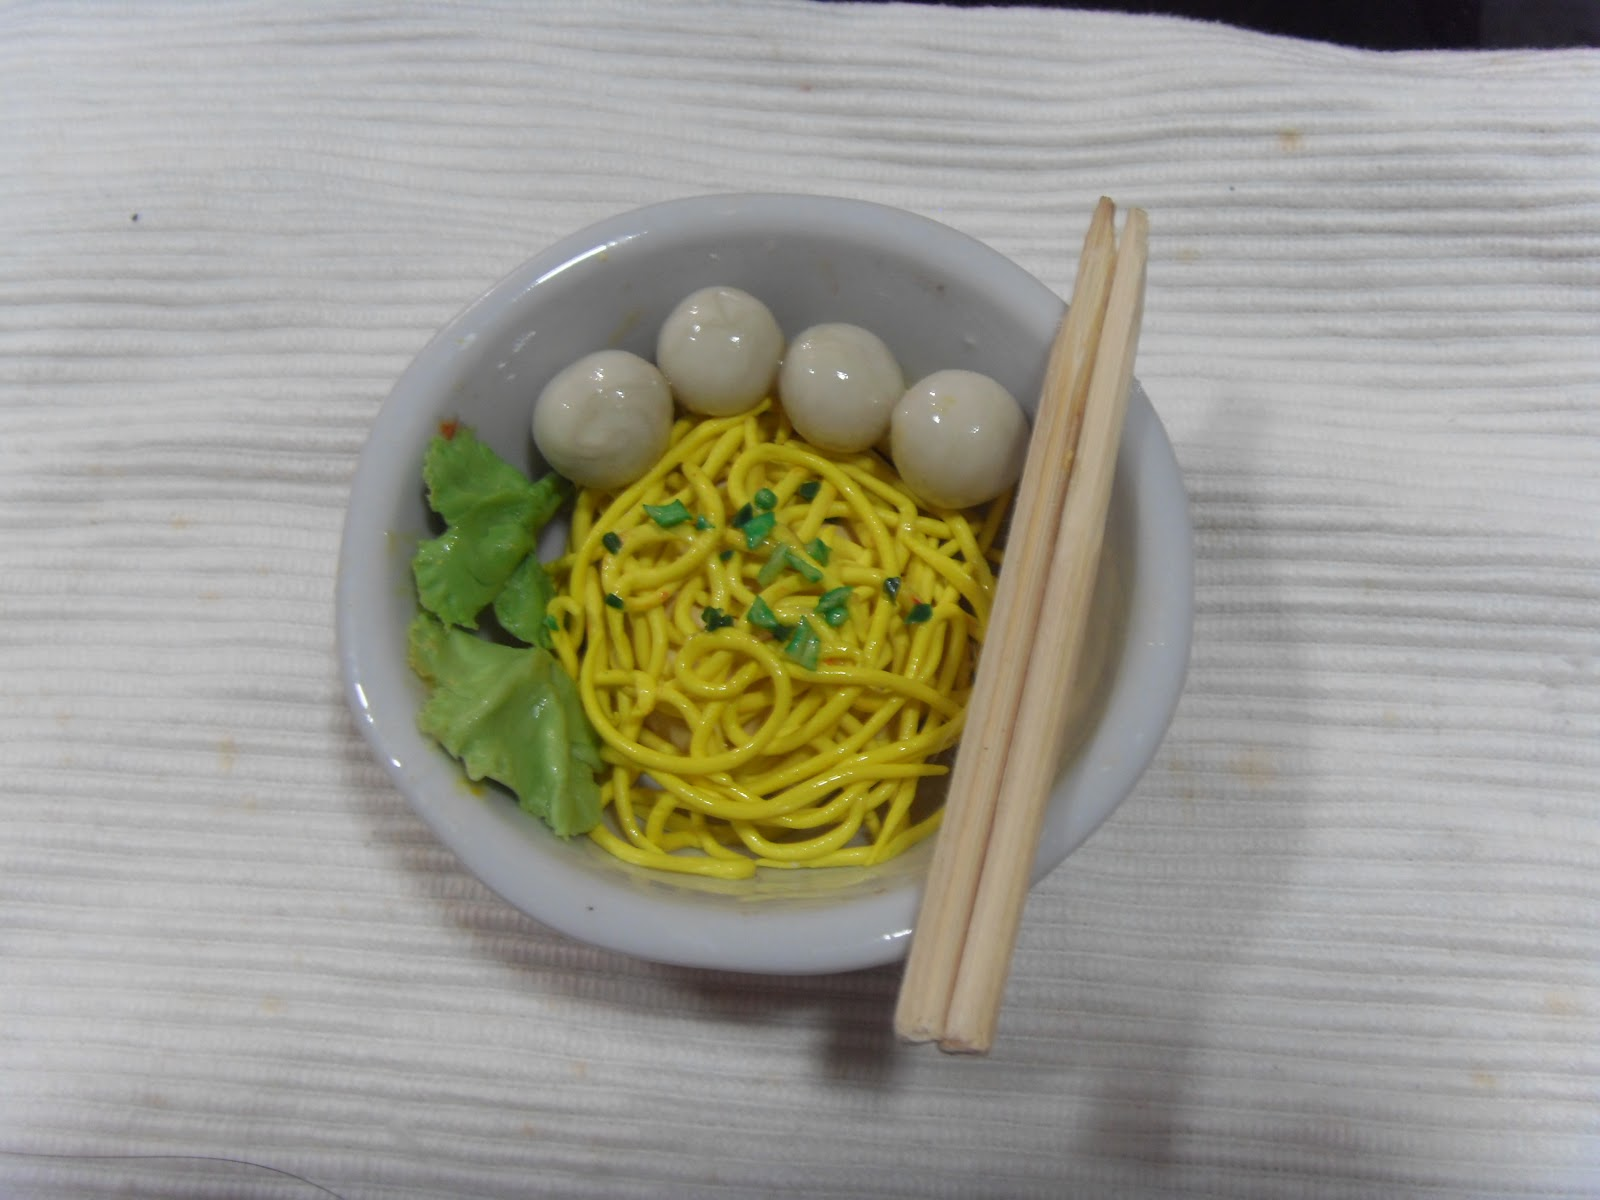 Kin 39 miniature workshop handmade clay food by kin quek for How to make fishing noodles